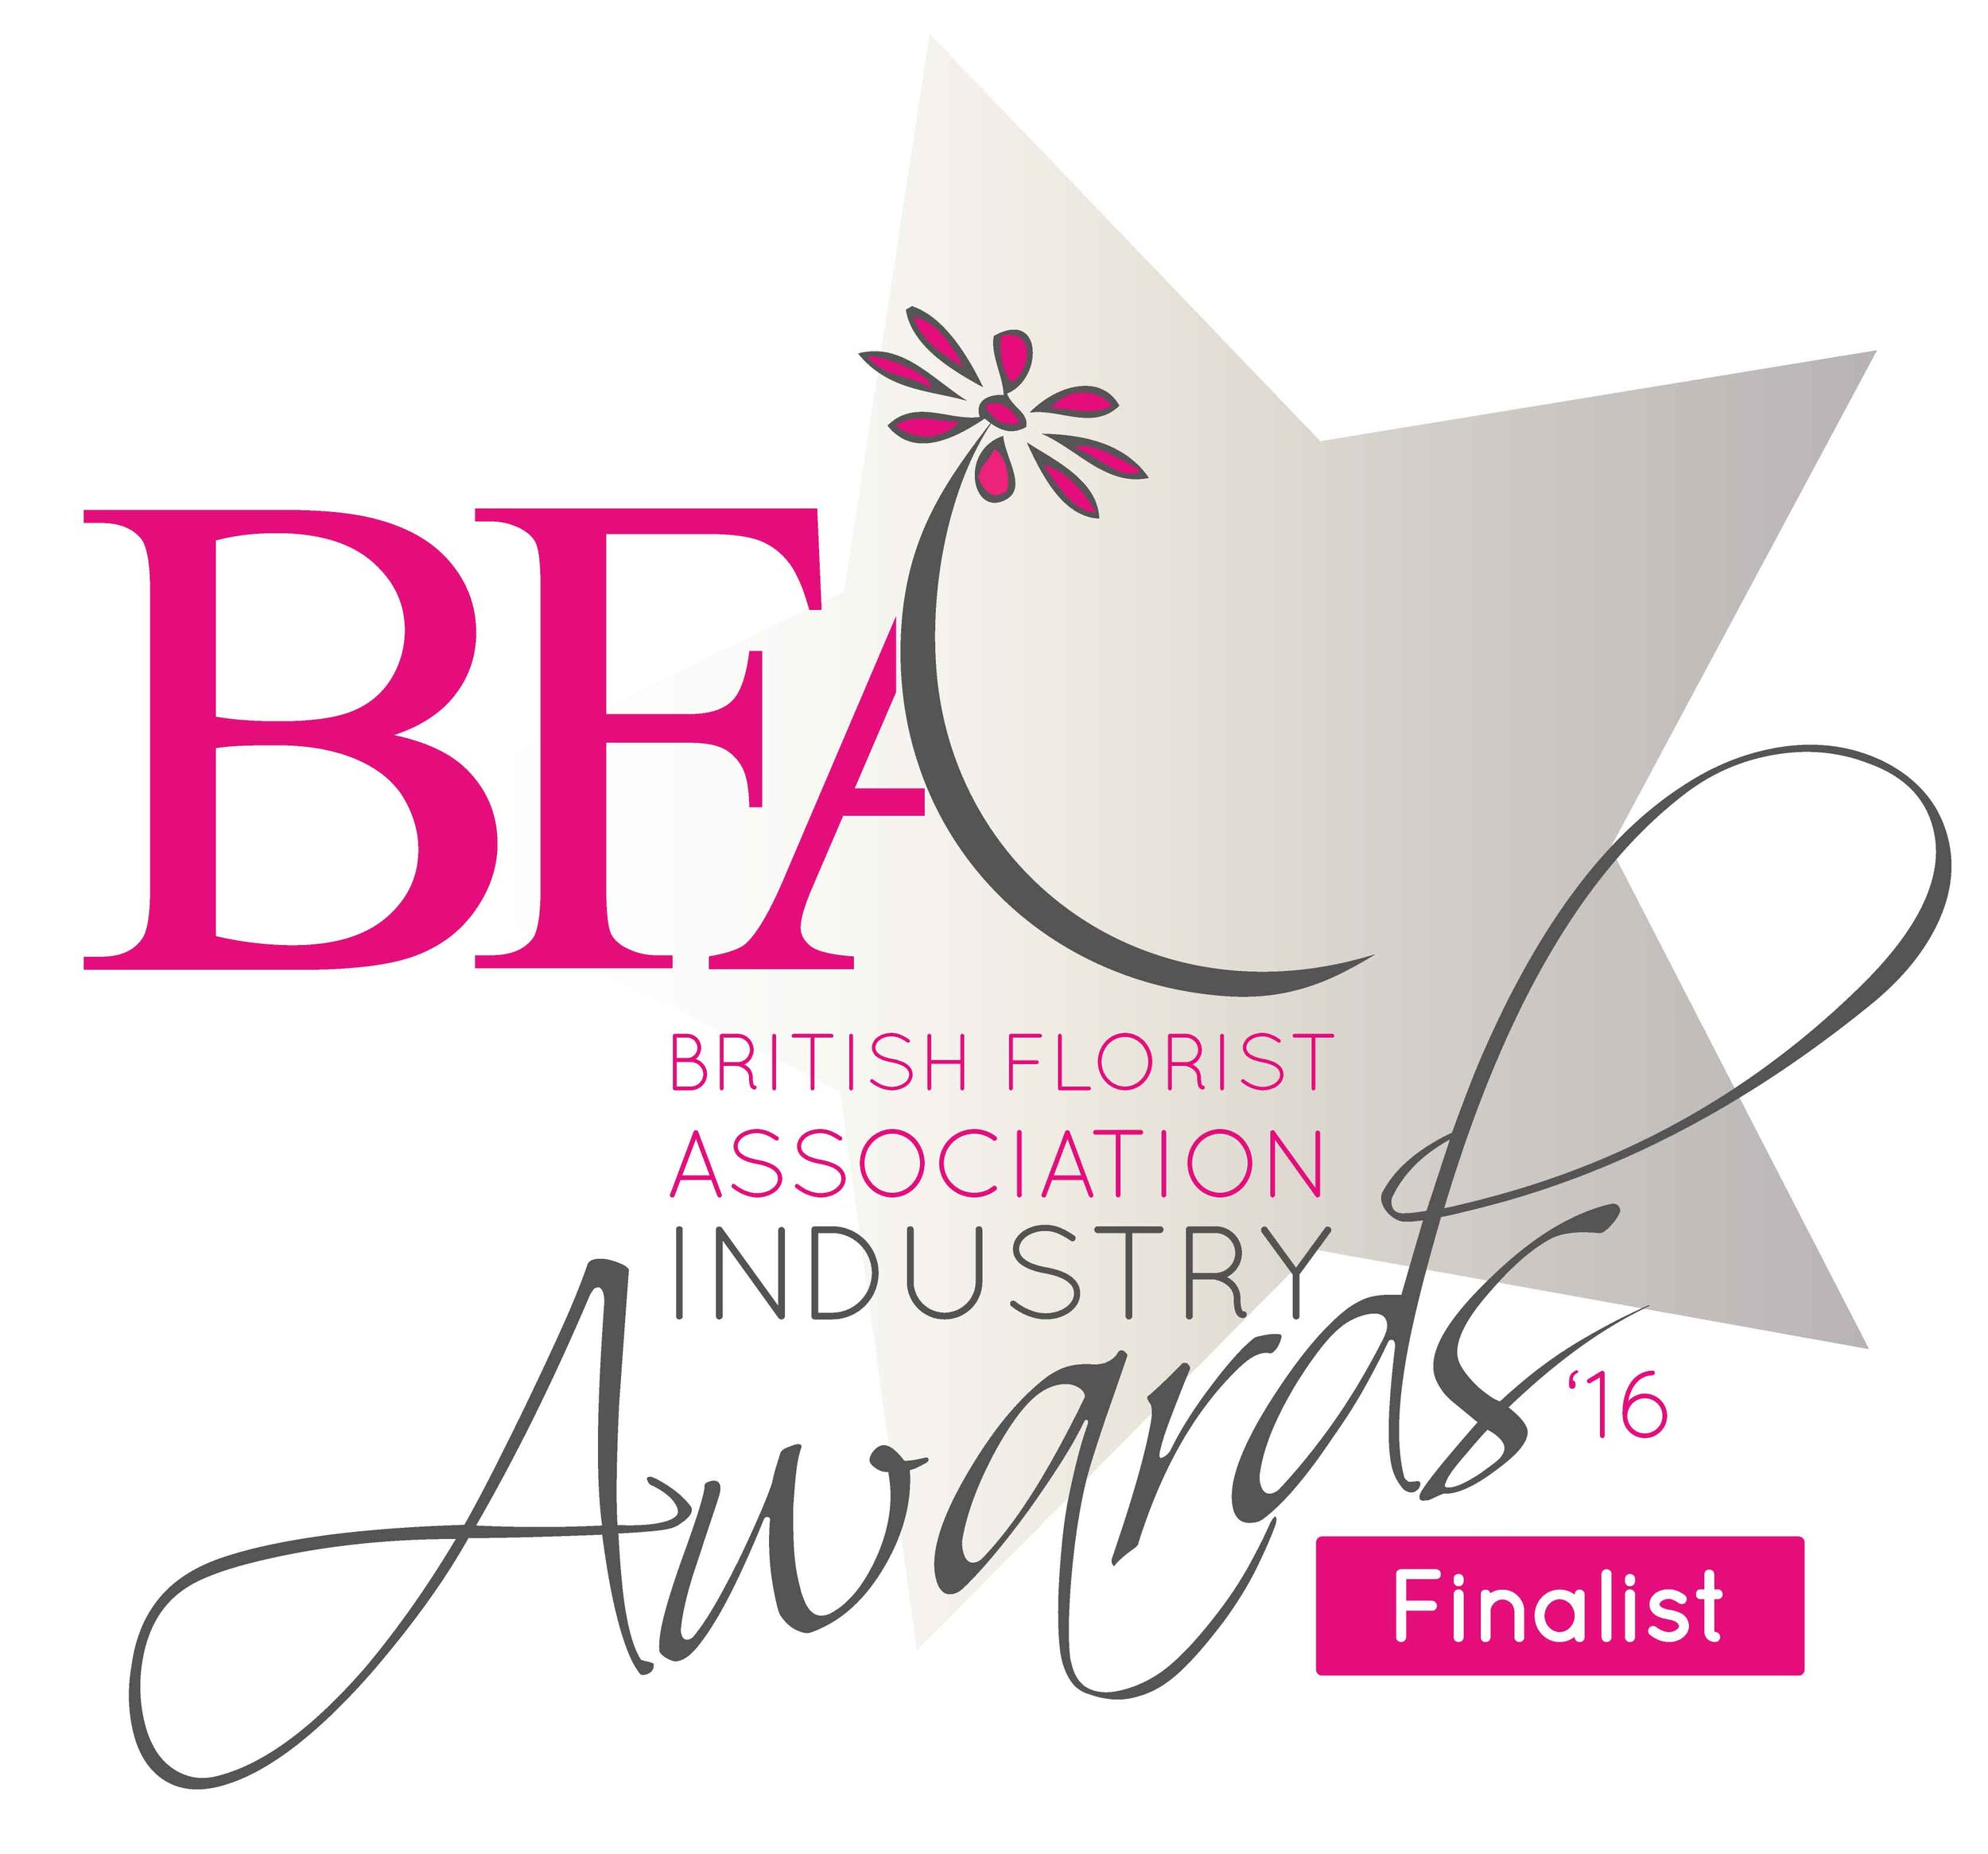 BFA-Industry-awards'16-high-res.-finalist.jpg